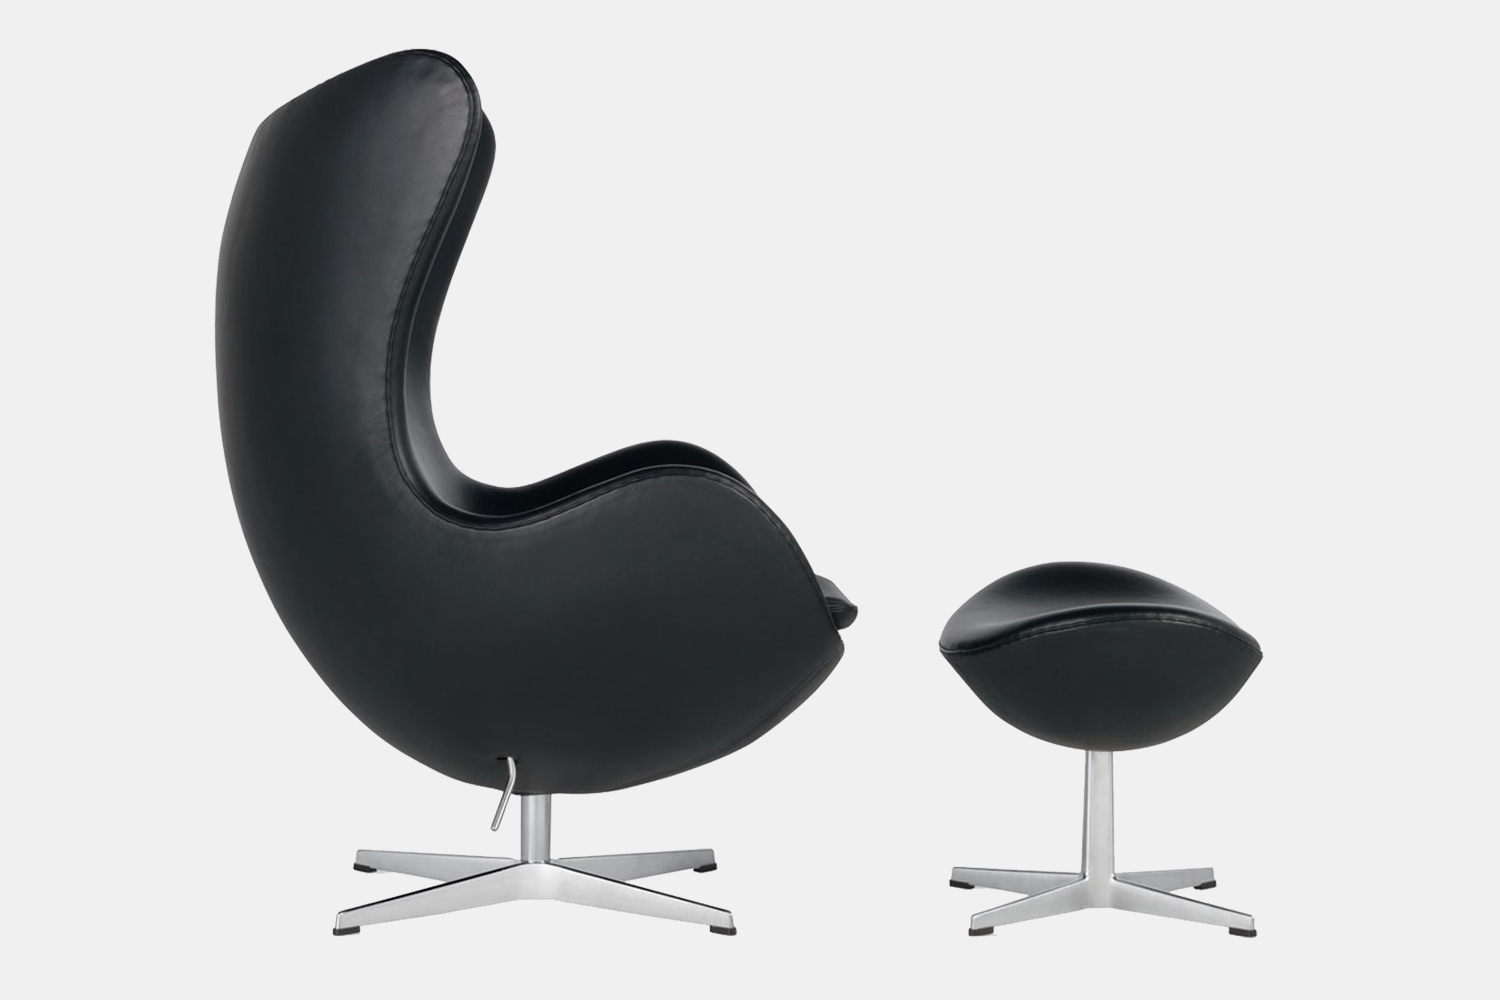 Design Within Reach Egg Chair with ottoman designed by Arne Jacobsen for Fritz Hansen